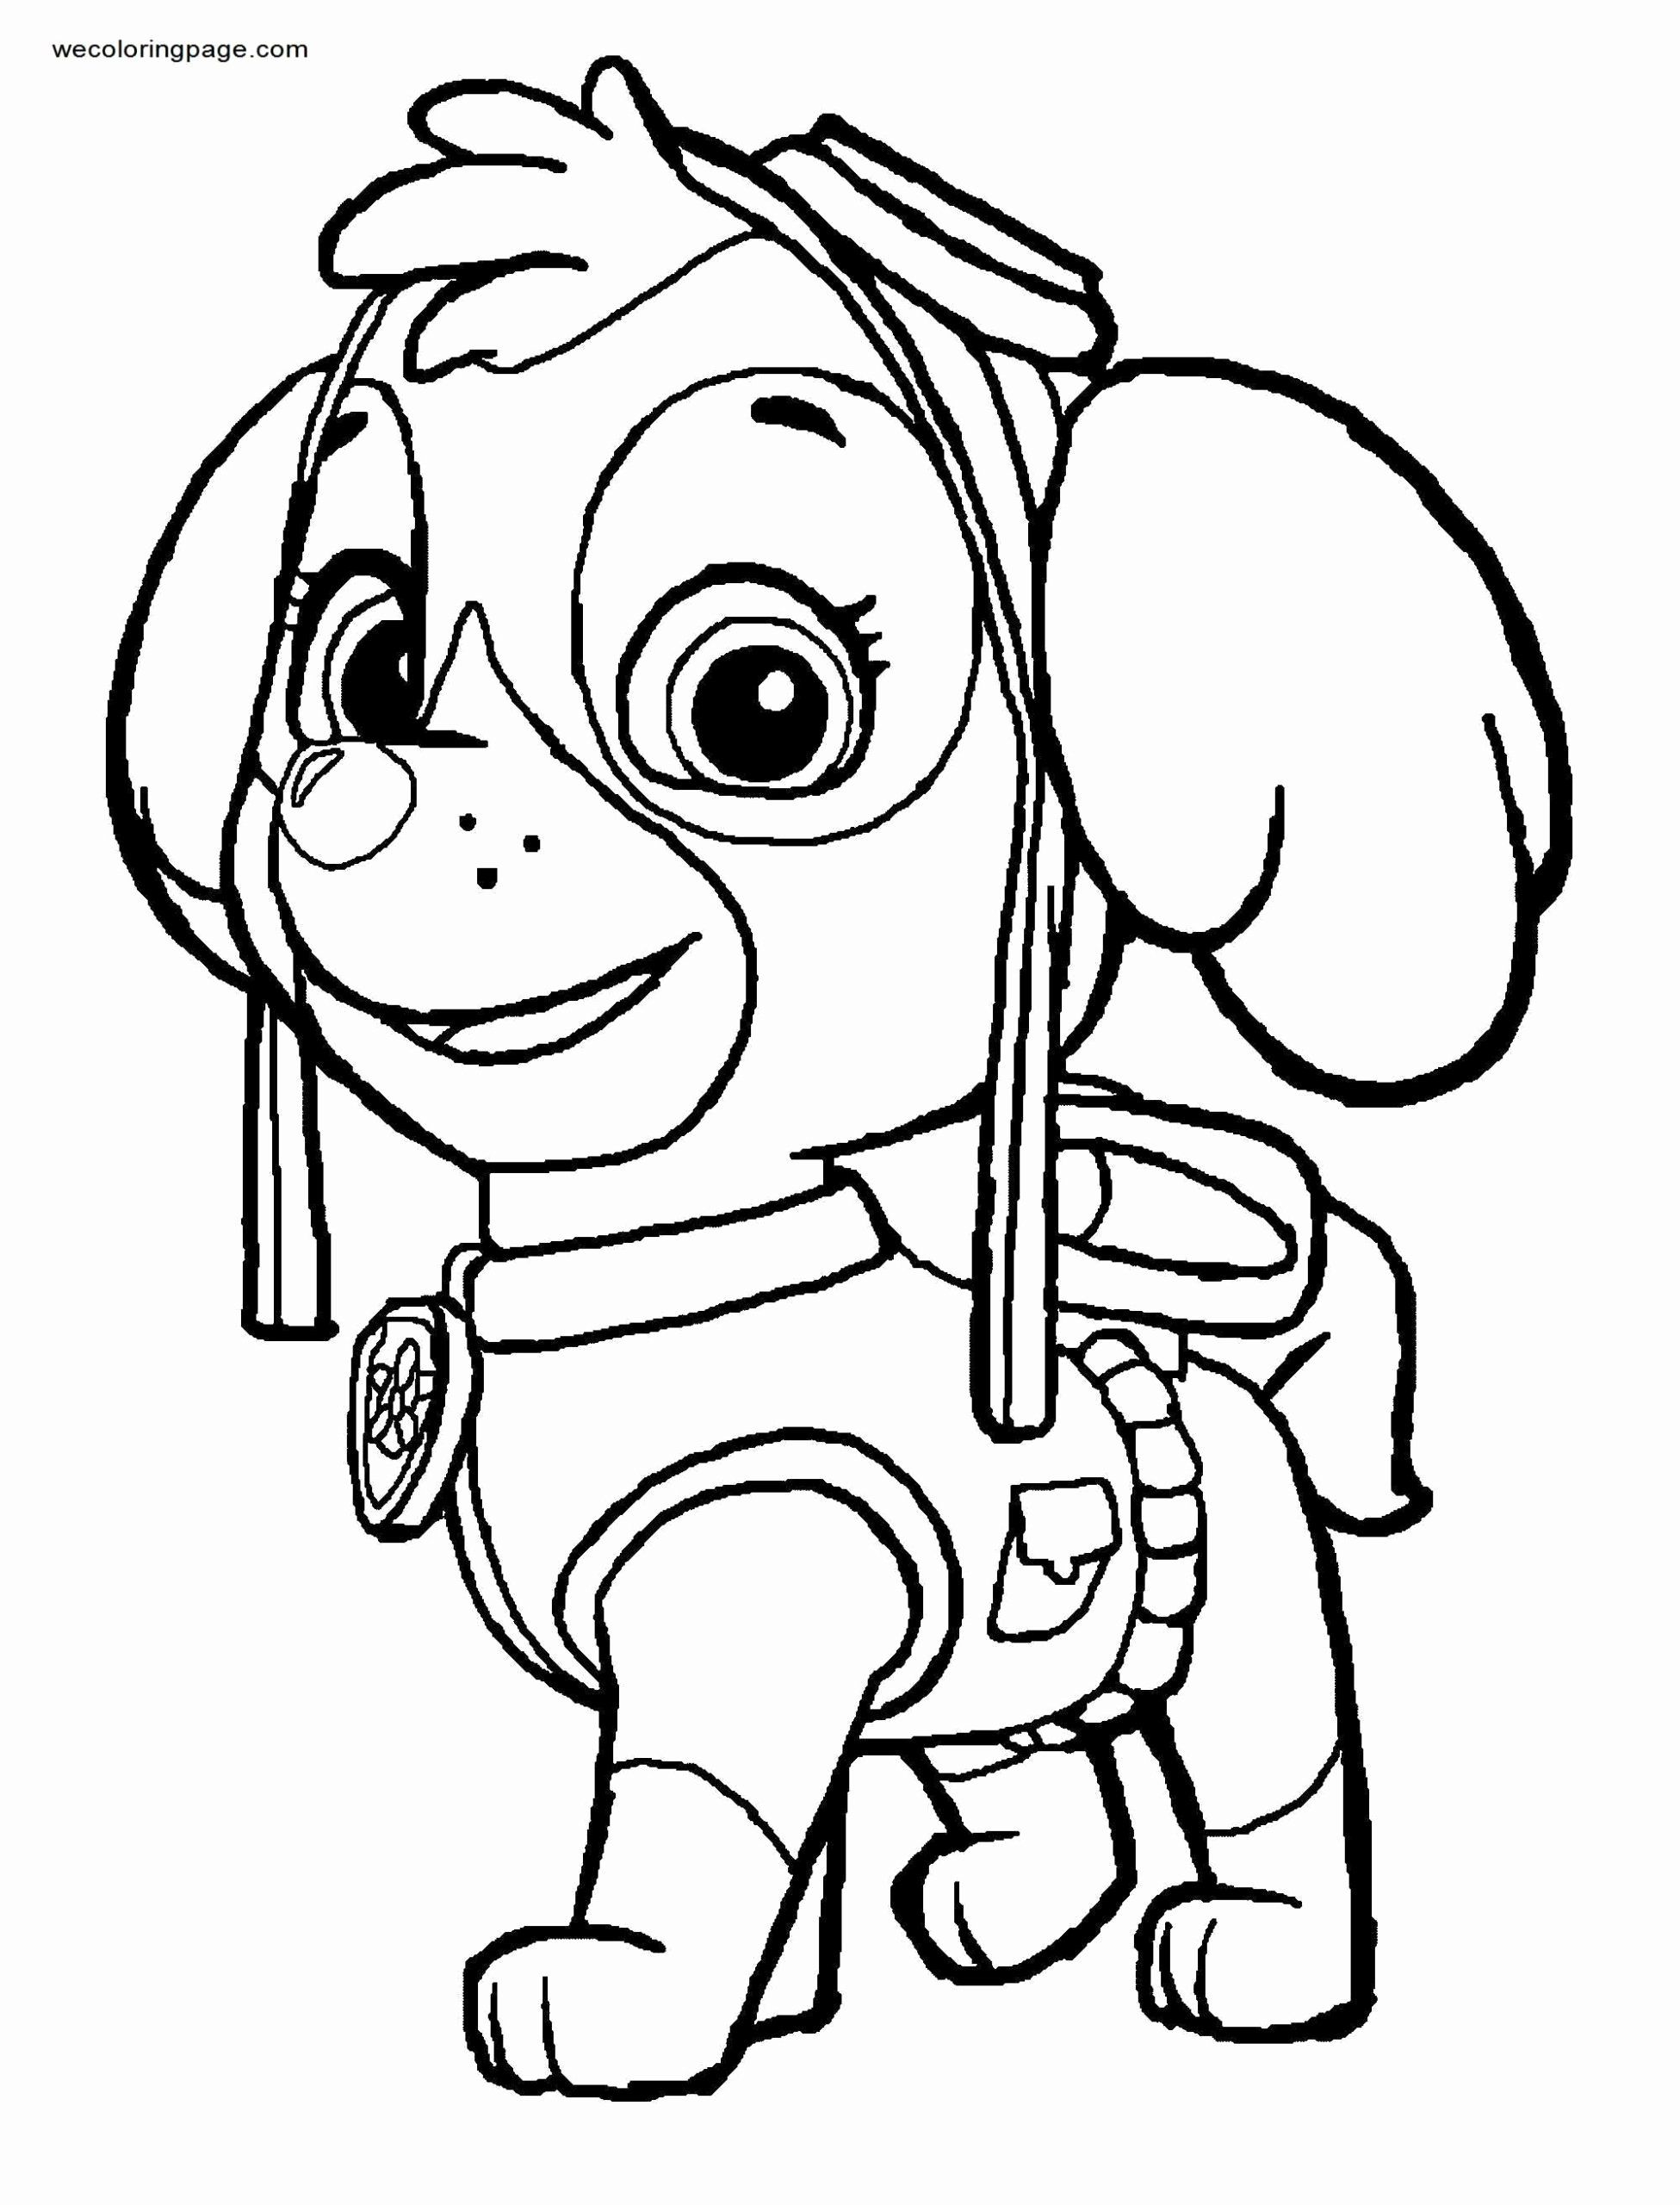 Skye Paw Patrol Coloring Page Inspirational Coloring Pages Top Magnificent Paw Patrol Colori In 2020 Paw Patrol Coloring Paw Patrol Coloring Pages Puppy Coloring Pages